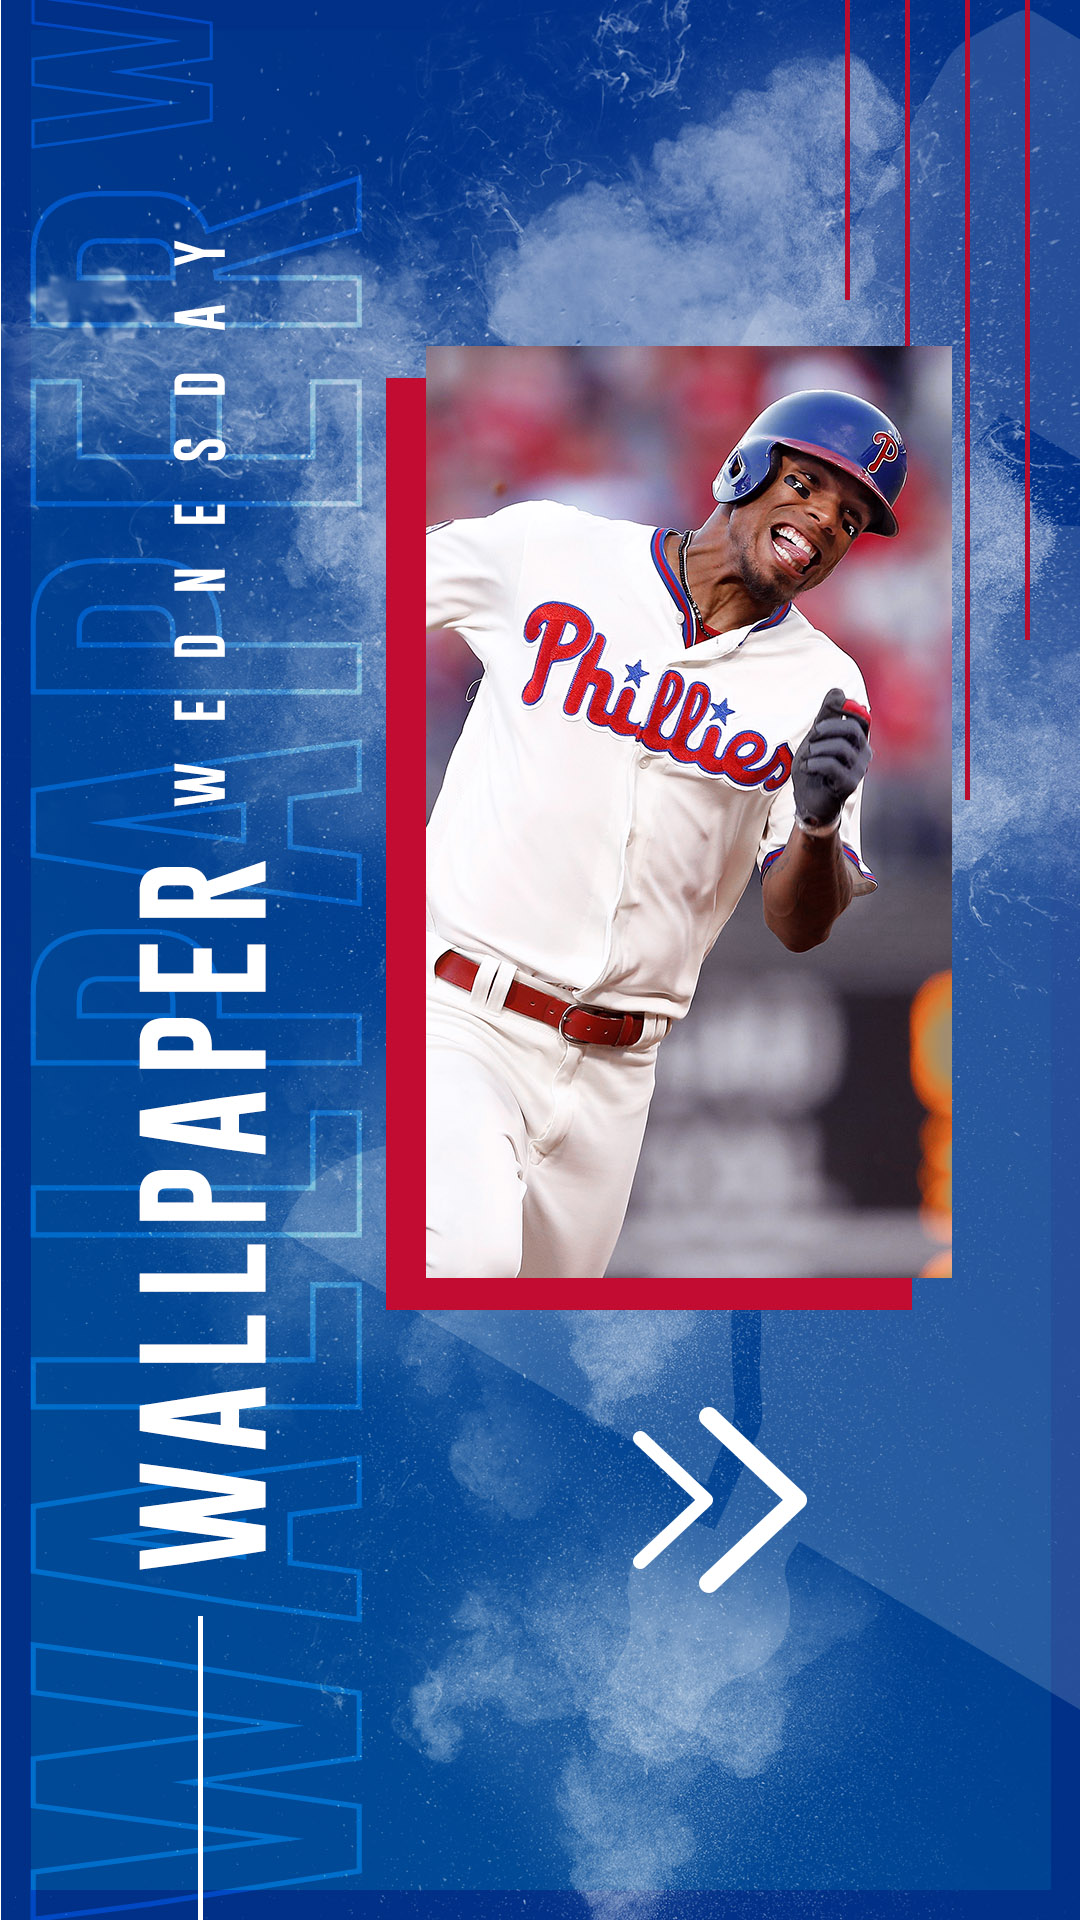 Philadelphia-Phillies_Instagram-Overlay_Wallpaper-Wednesday_1920x1080Philadelphia-Phillies_Instagram_Overlay_Wallpaper-W.jpg